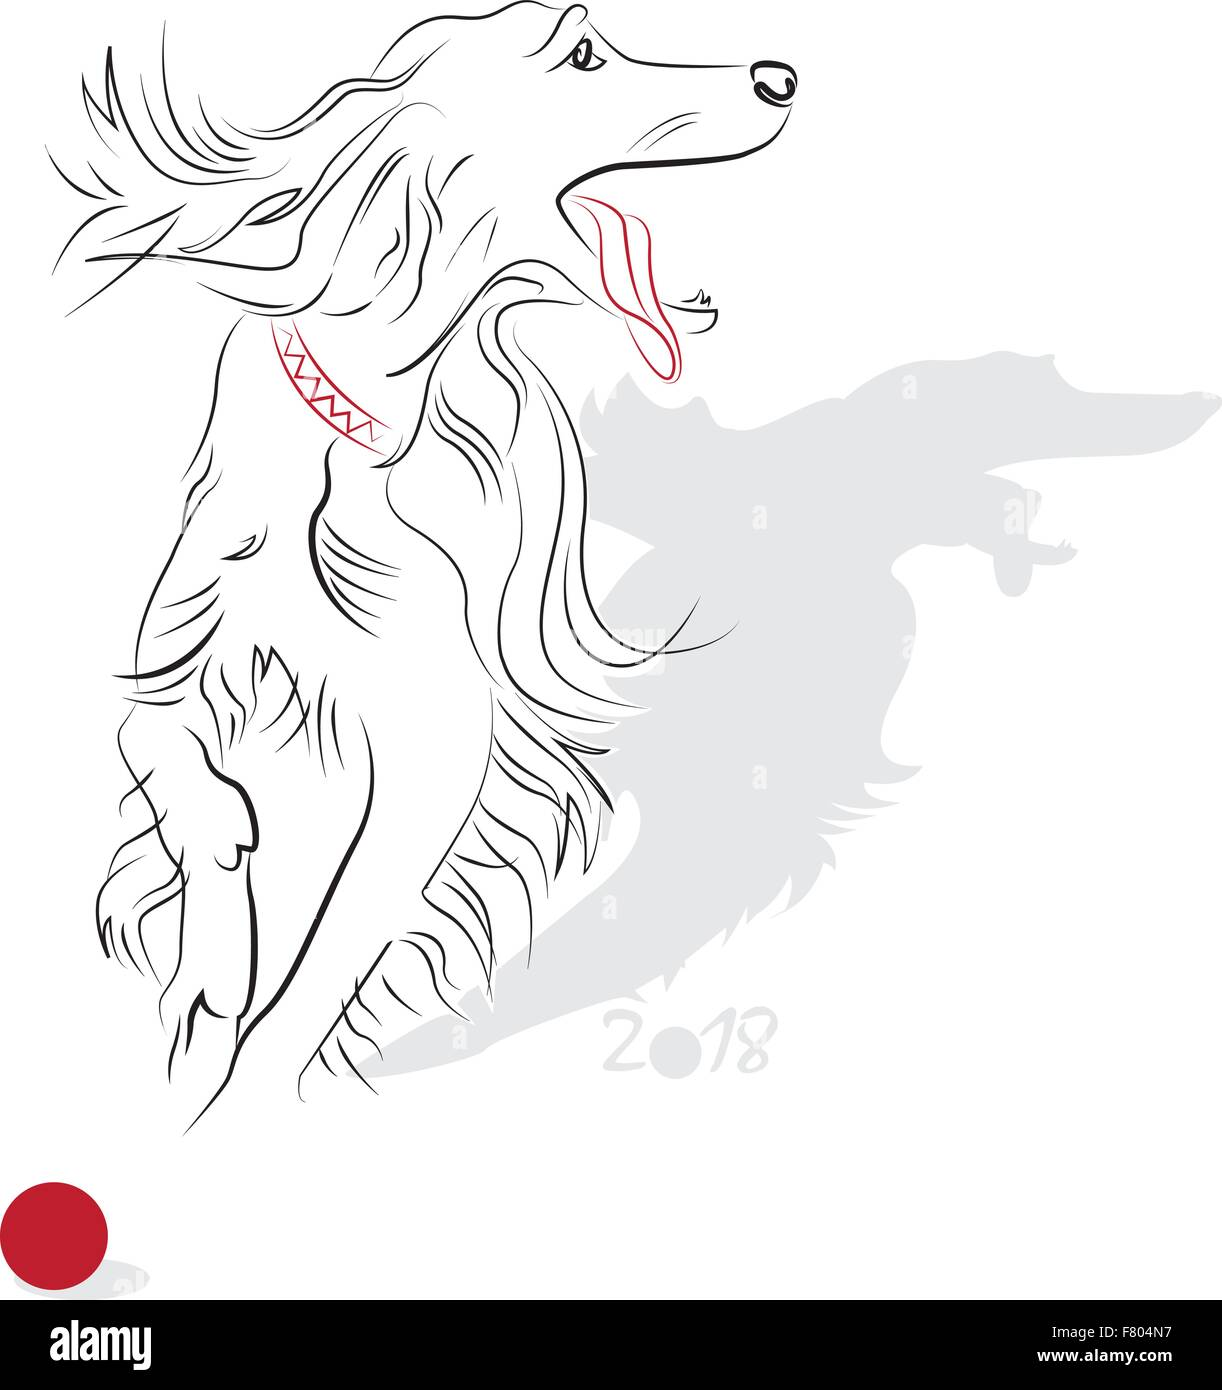 chinese new year 2018 dog year greeting or invitation card for the holiday vector illustration